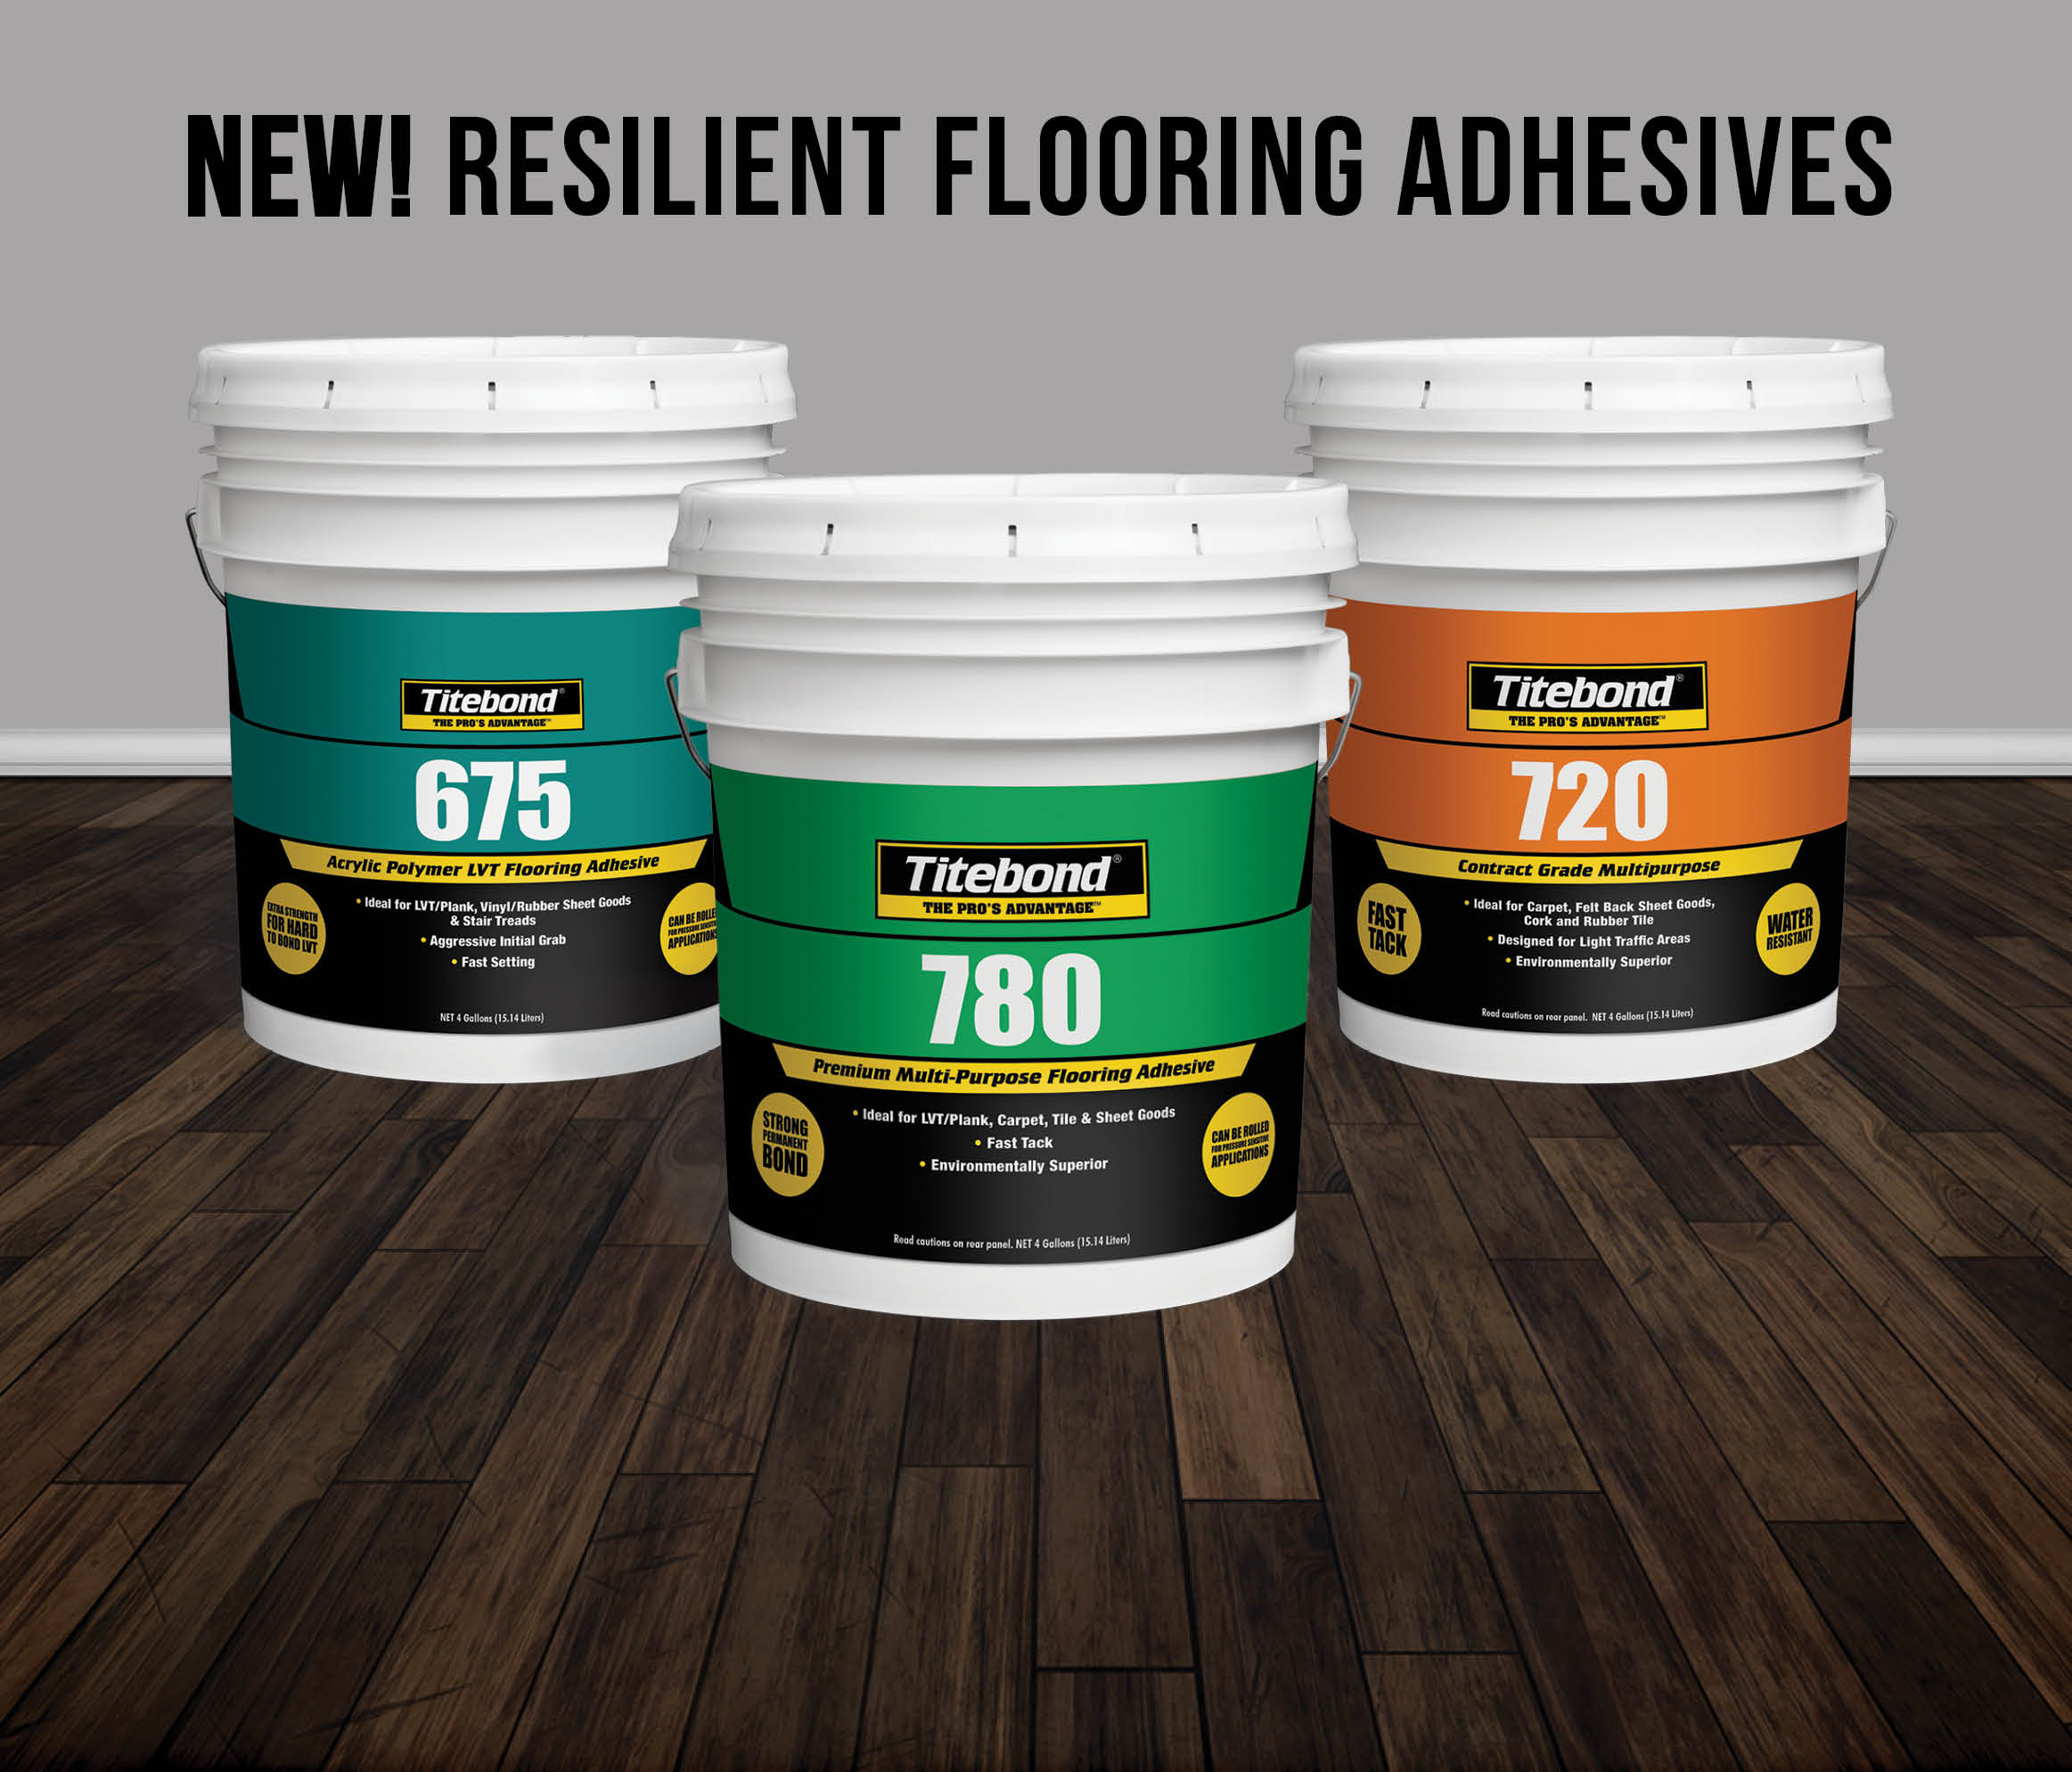 Titebond Offers the Right Flooring Adhesive to Install All Types of Resilient Flooring